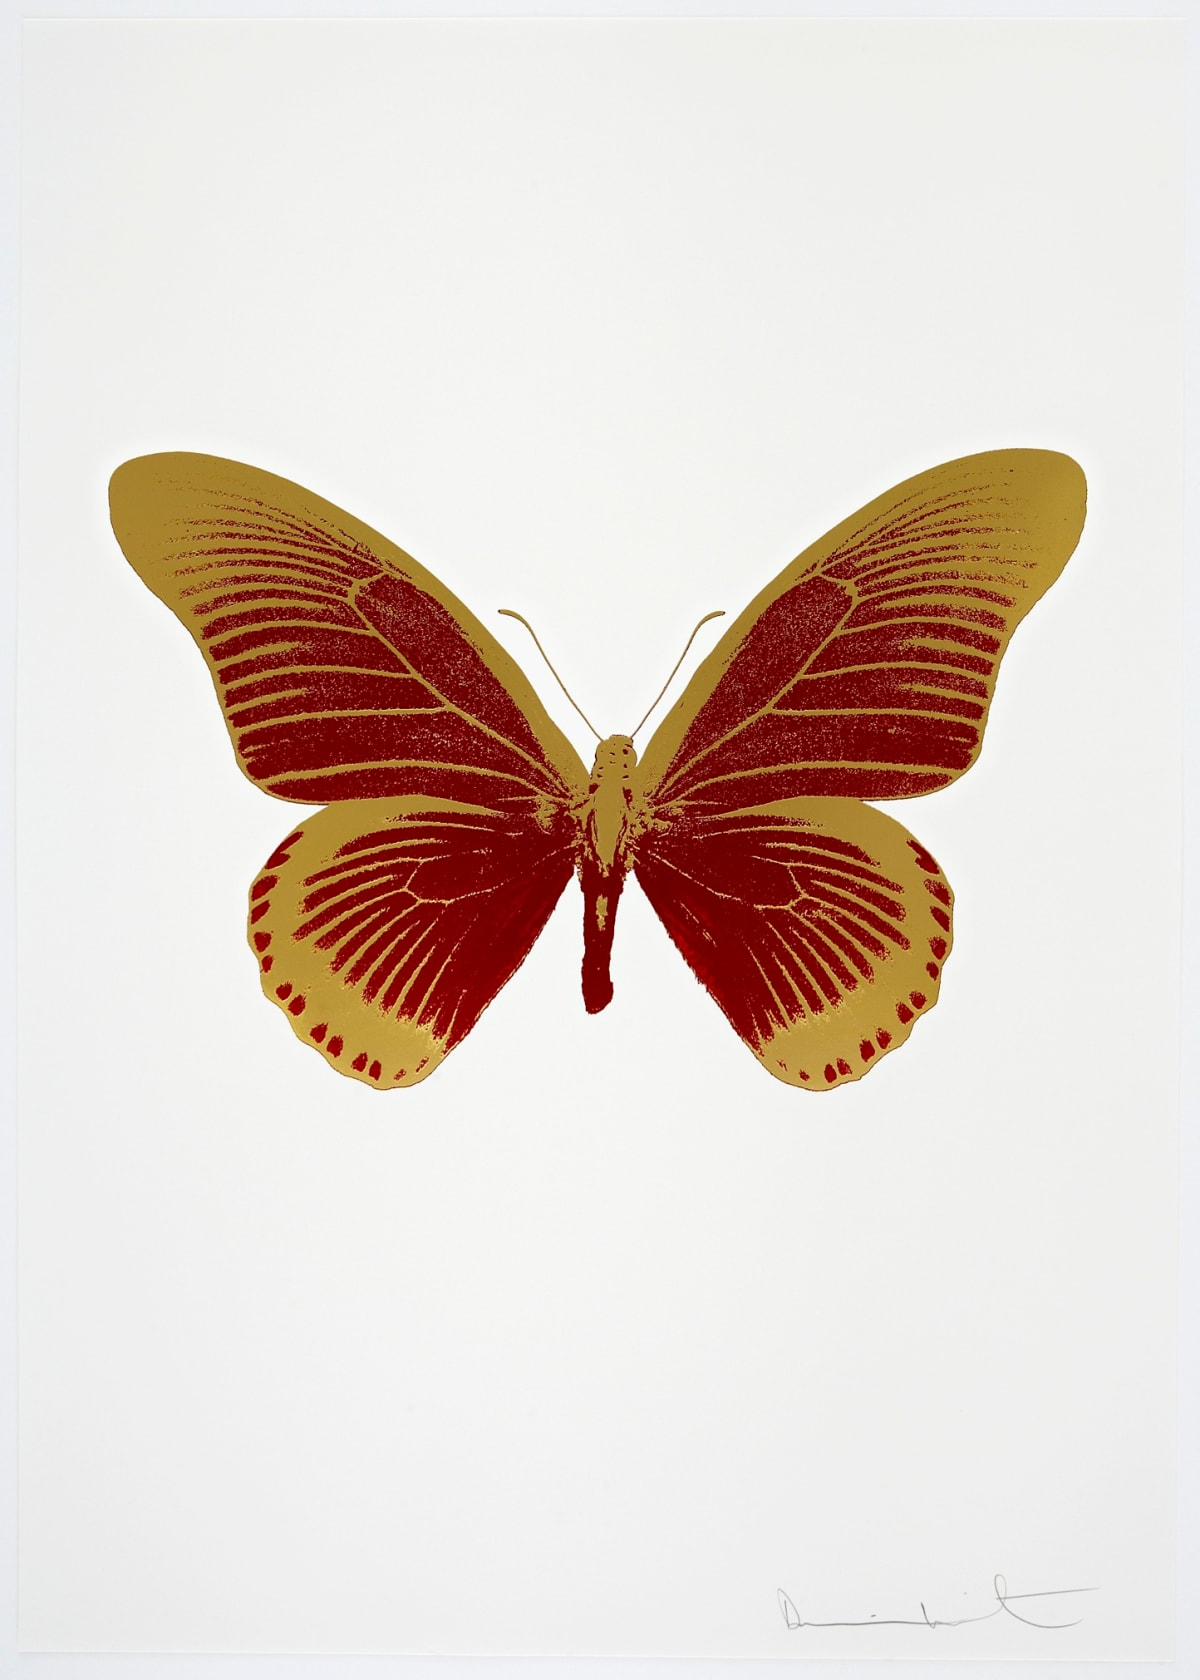 Damien Hirst The Souls IV - Chilli Red/Oriental Gold Damien Hirst butterfly foil print for sale Damien Hirst print for sale , 2010 2 colour foil block on 300gsm Arches 88 archival paper. Signed and numbered. Published by Paul Stolper and Other Criteria 72 x 51cm OC8009 / 1418-32 Edition of 15